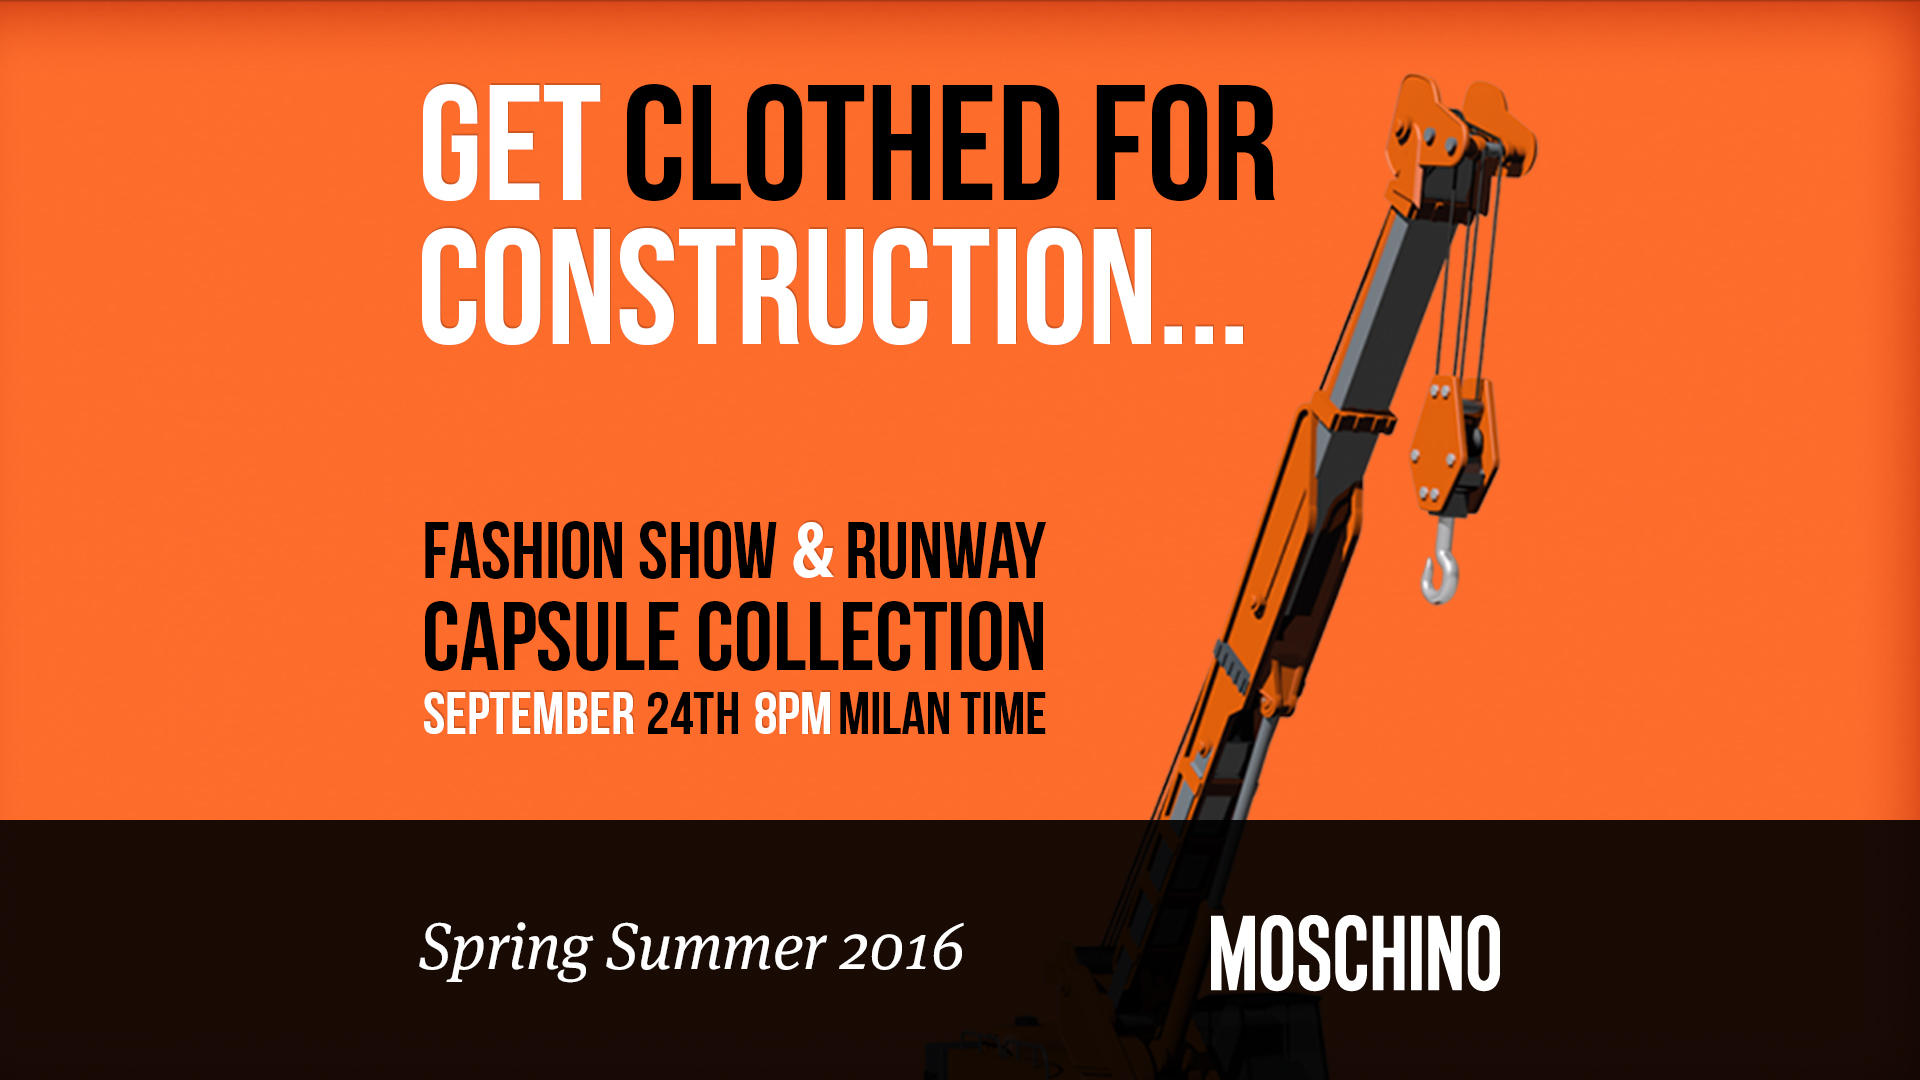 Moschino Spring Summer 2016 Women's Runway Show Live Streaming September 24th